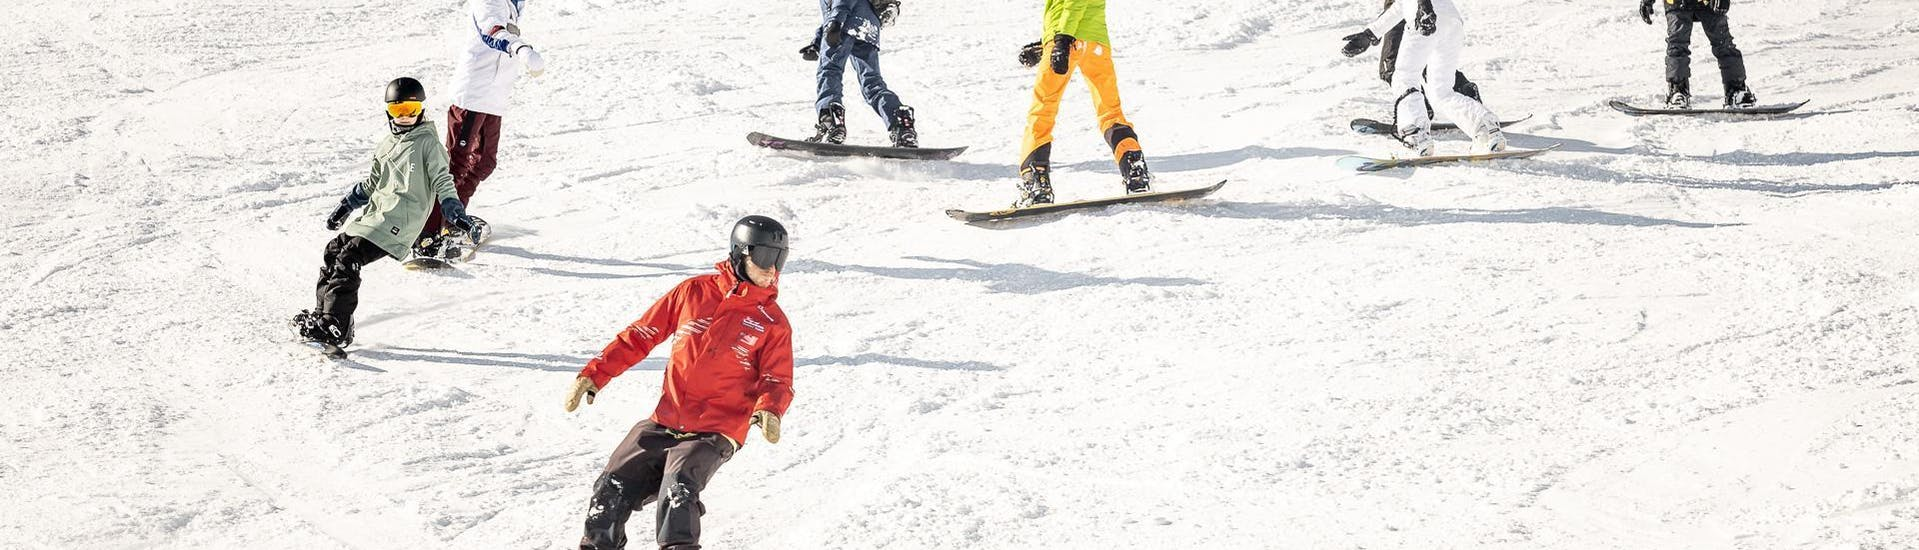 A group of  young snowboarders is learning how to master the board on the snowy slopes of the ski resort of Sölden during the Snowboarding Lessons for Kids (9-15 years) - All Levels organized by the ski school Ski & Snowboardschool Vacancia.